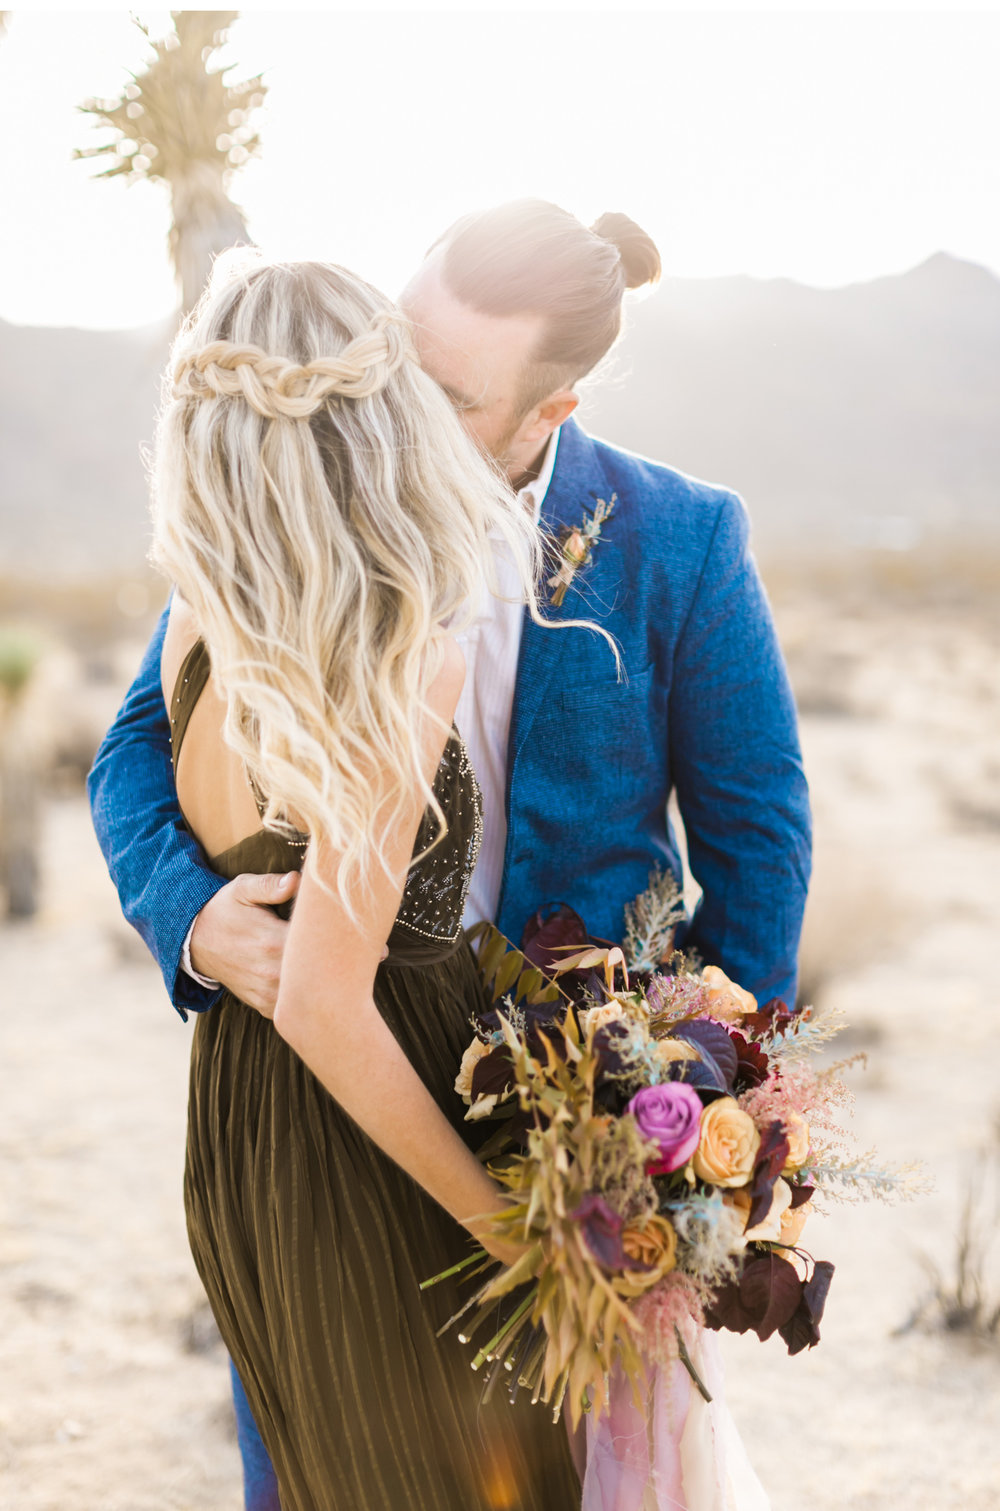 Southern-California-Elopement-Natalie-Schutt-Photography-Joshua-Tree_03.jpg